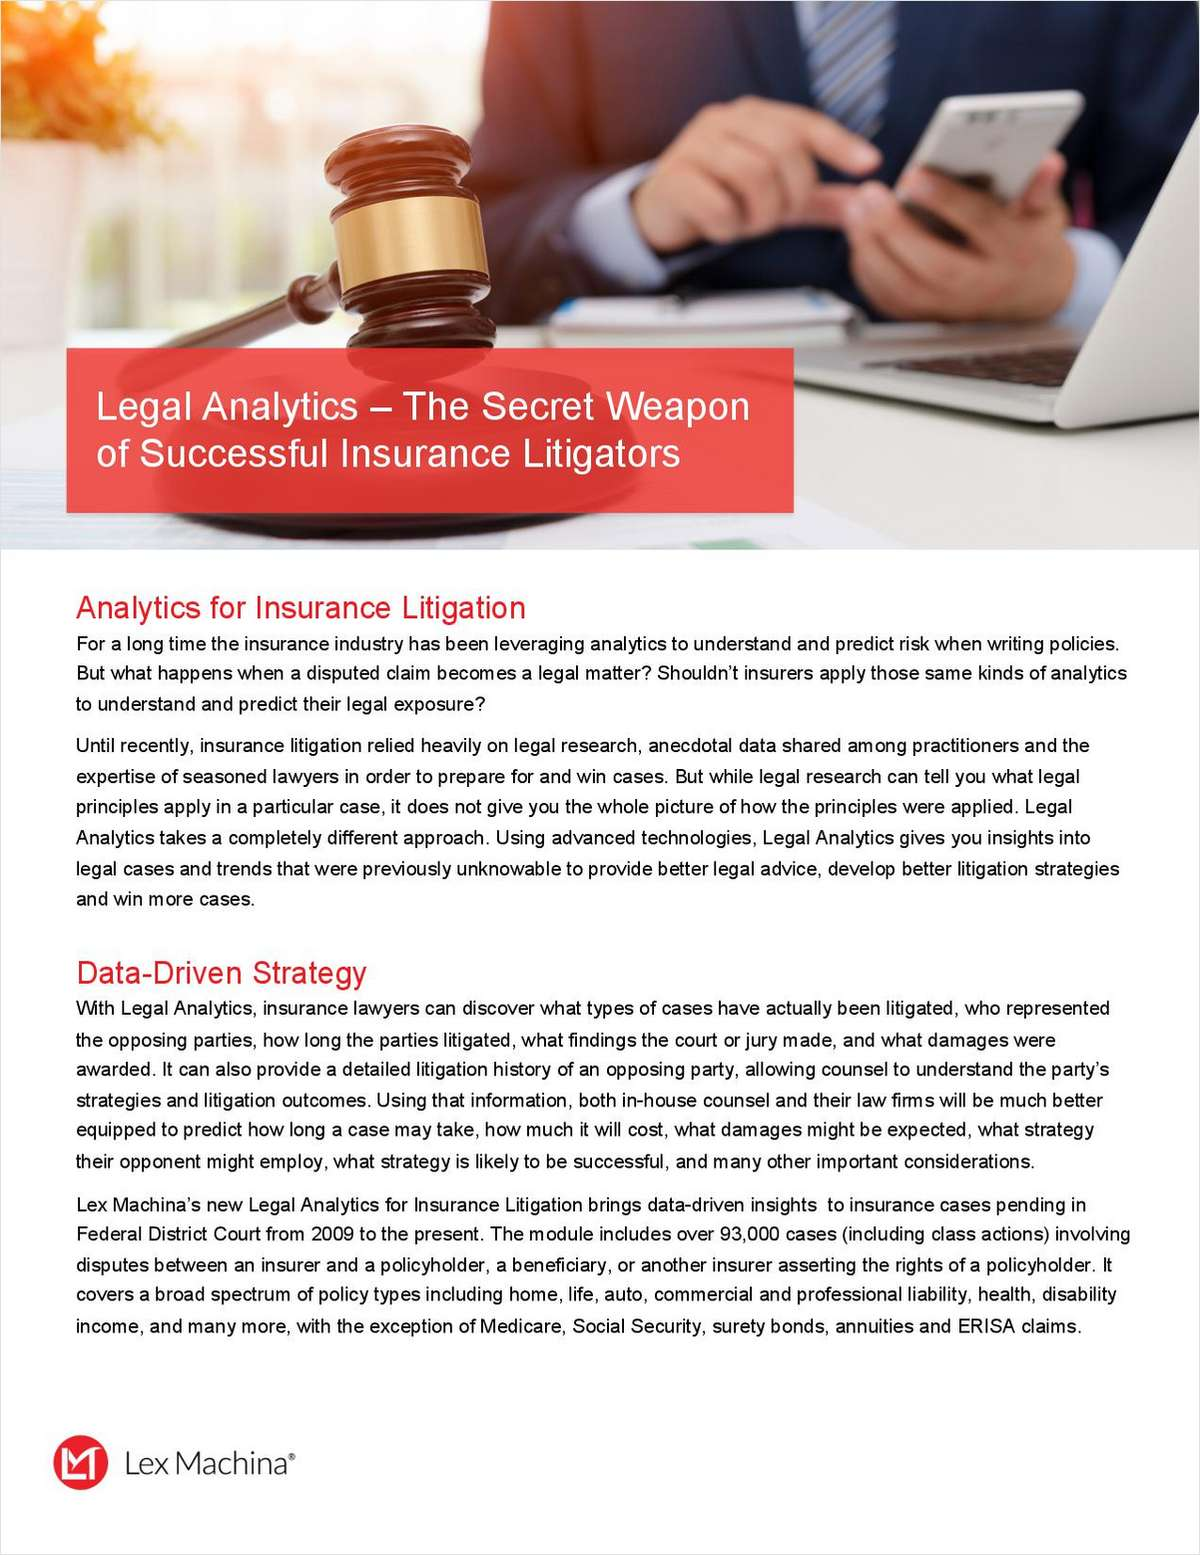 Legal Analytics - The Secret Weapon of Successful Insurance Litigators